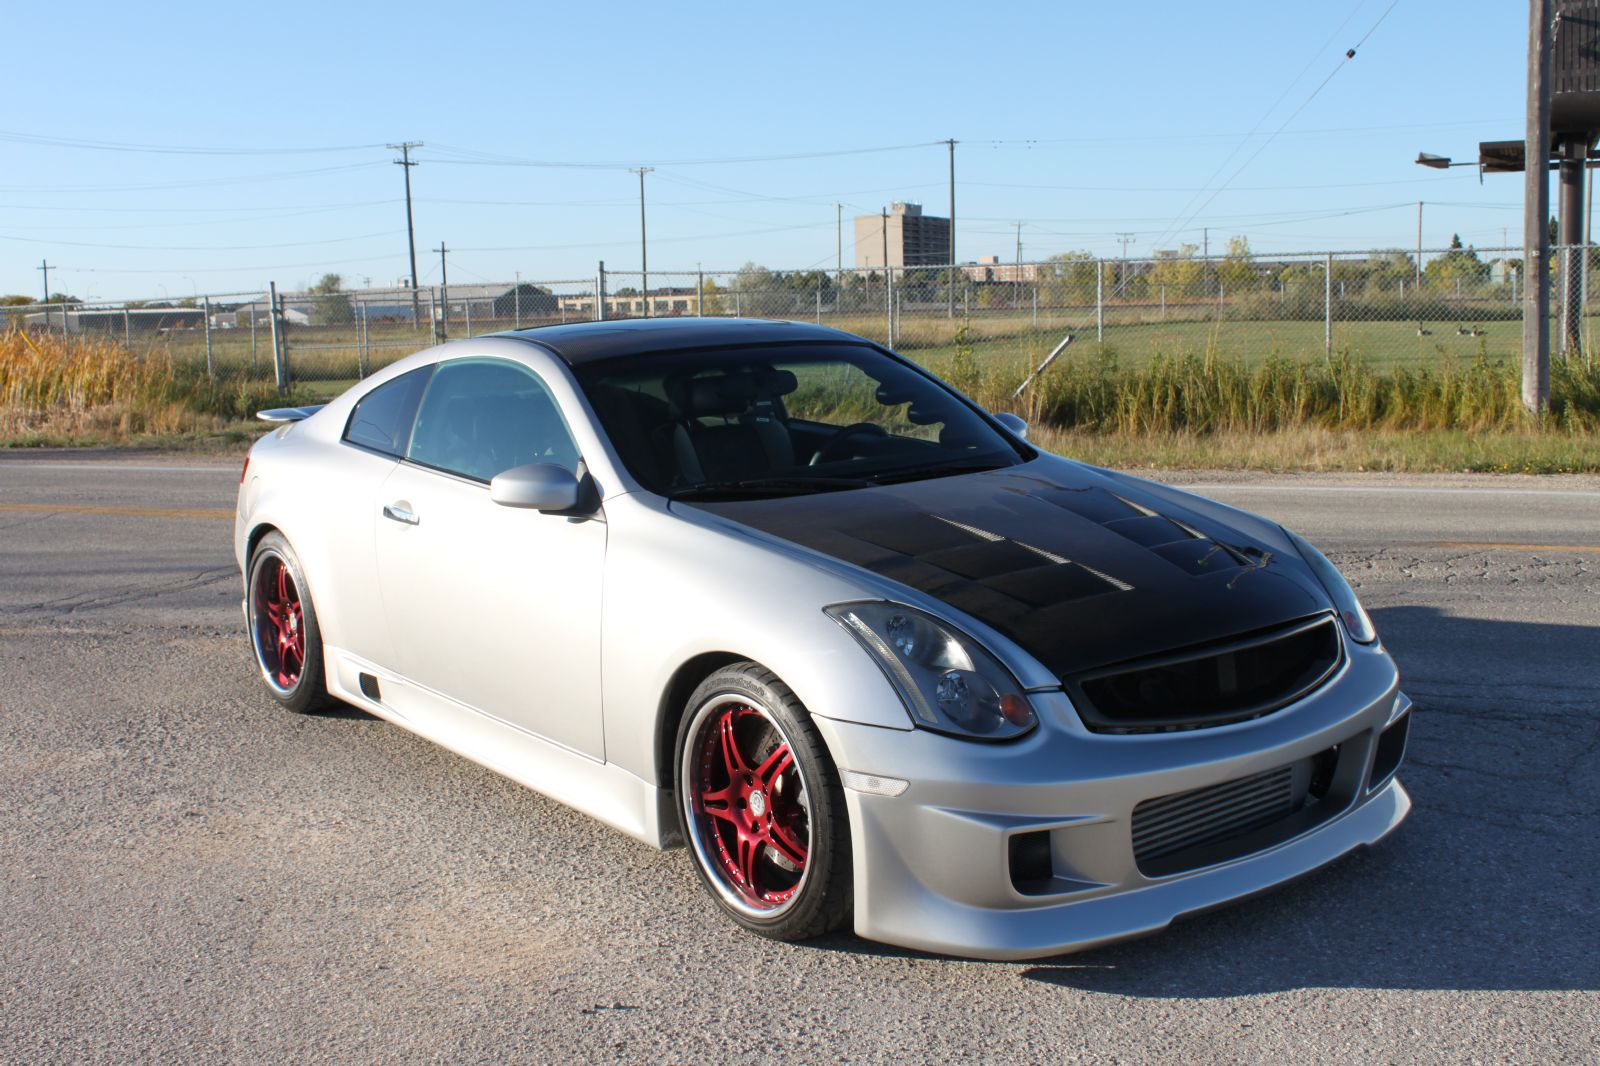 used infiniti g35 new cars car reviews prices used cars for html autos weblog. Black Bedroom Furniture Sets. Home Design Ideas